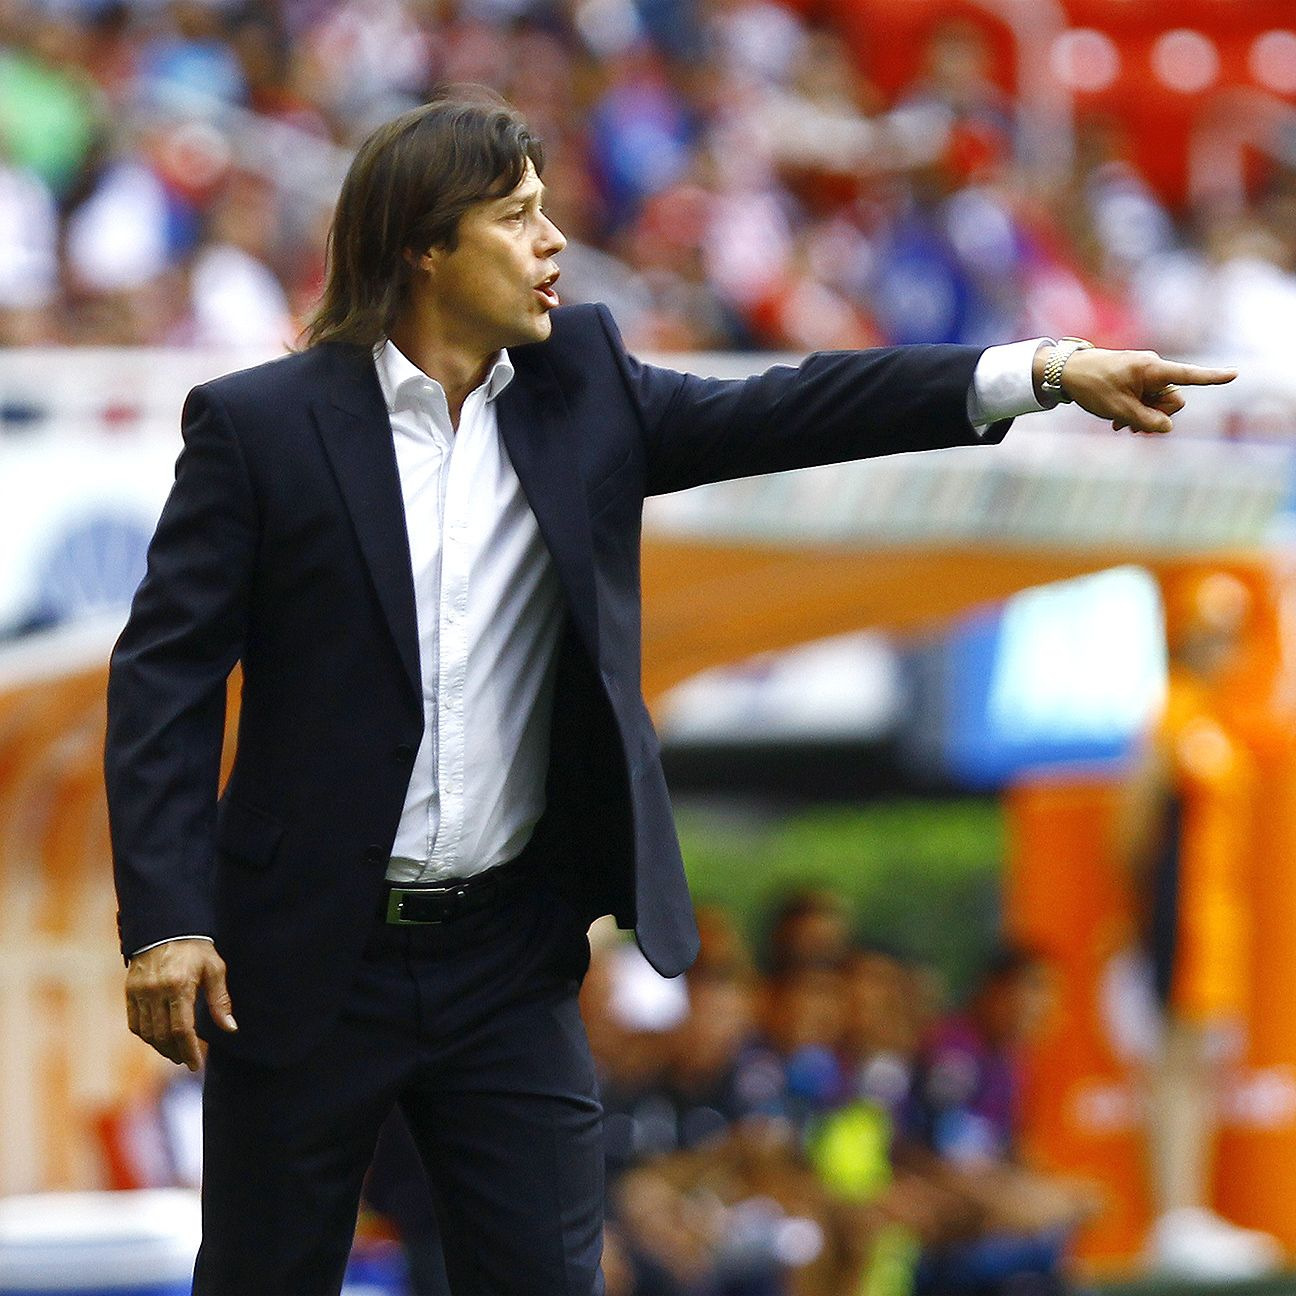 The Matias Almeyda era at Chivas got off to a winning start on Sunday against Queretaro.